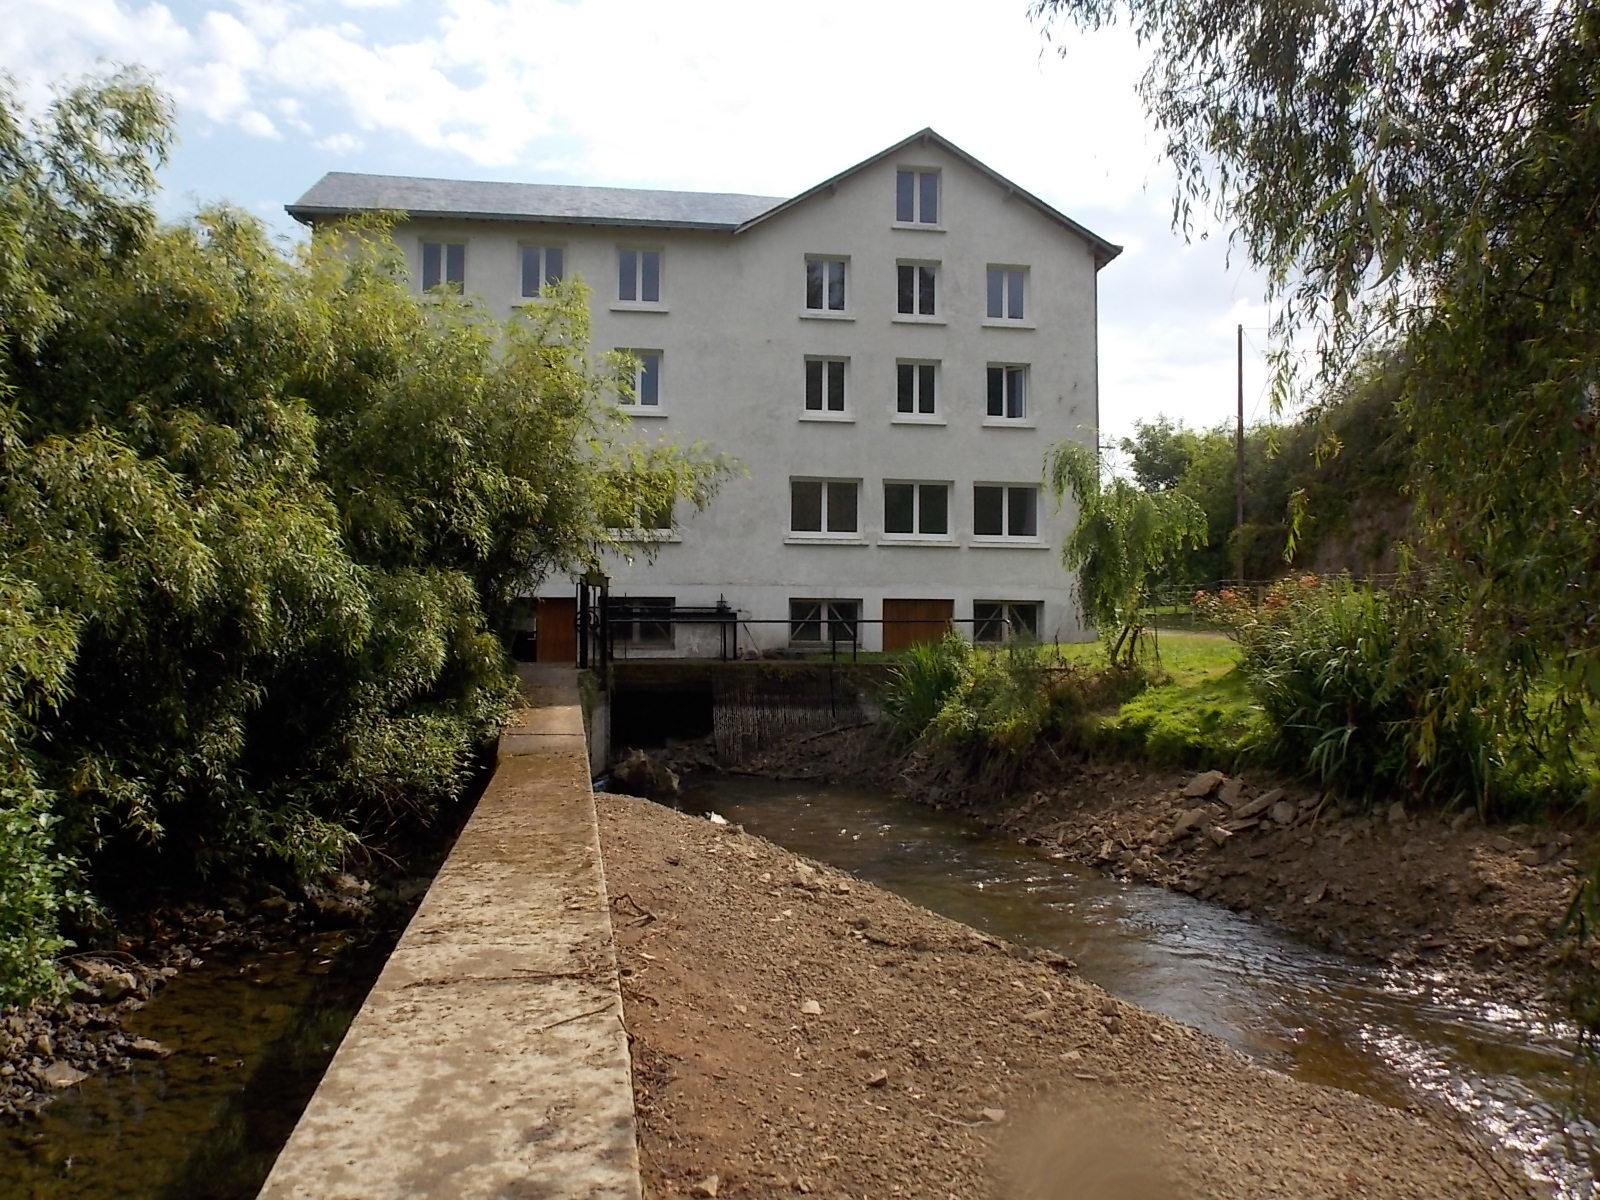 Partly renovated old water mill with accommodation over several floors